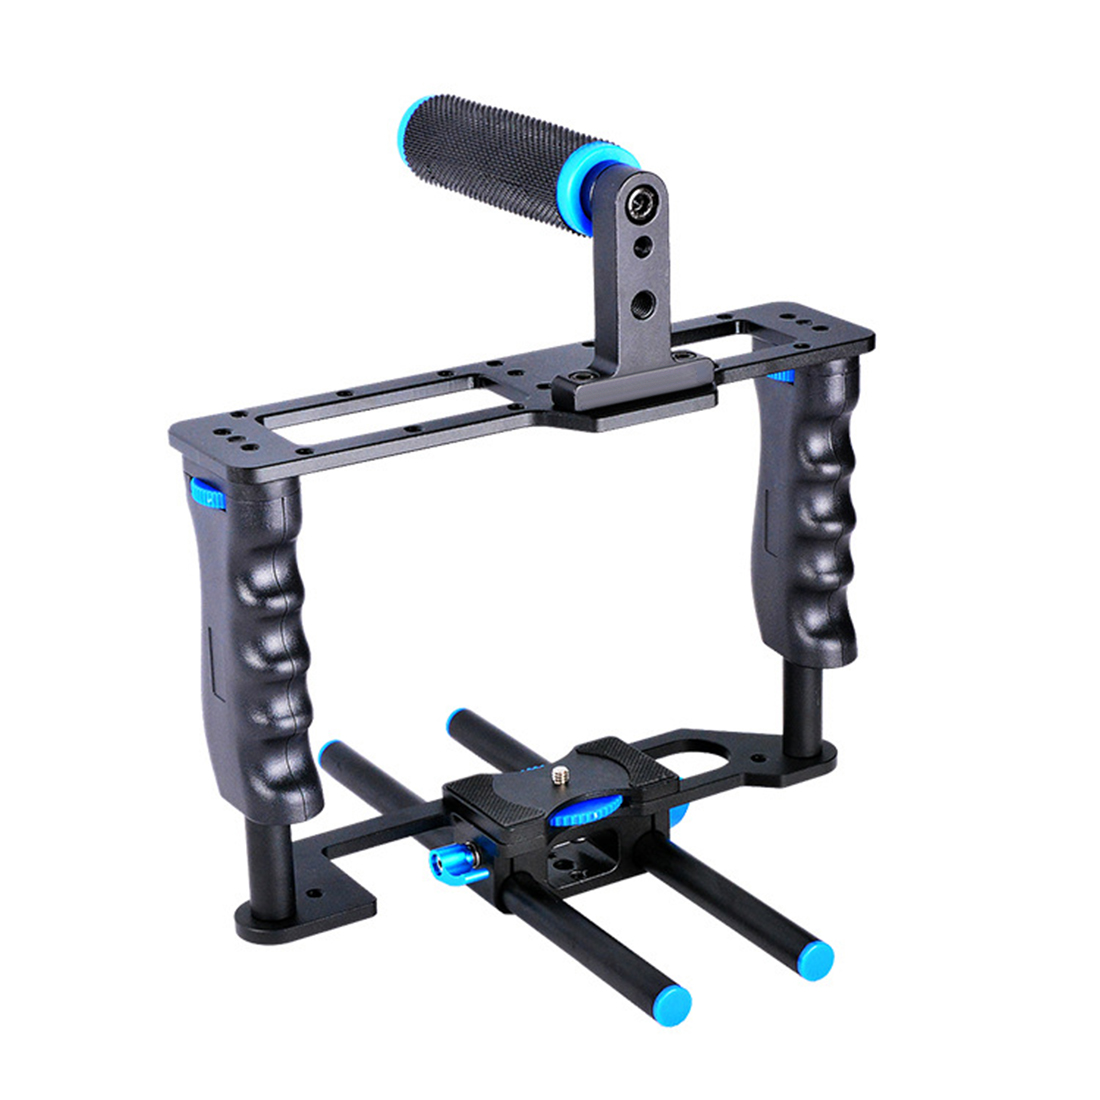 Aluminum Alloy ABS Camera Video Cage Film Movie Making Kit DSLR Cage & Handle Grip & Rod For Canon 5D2 700D 650D For Nikon D7200